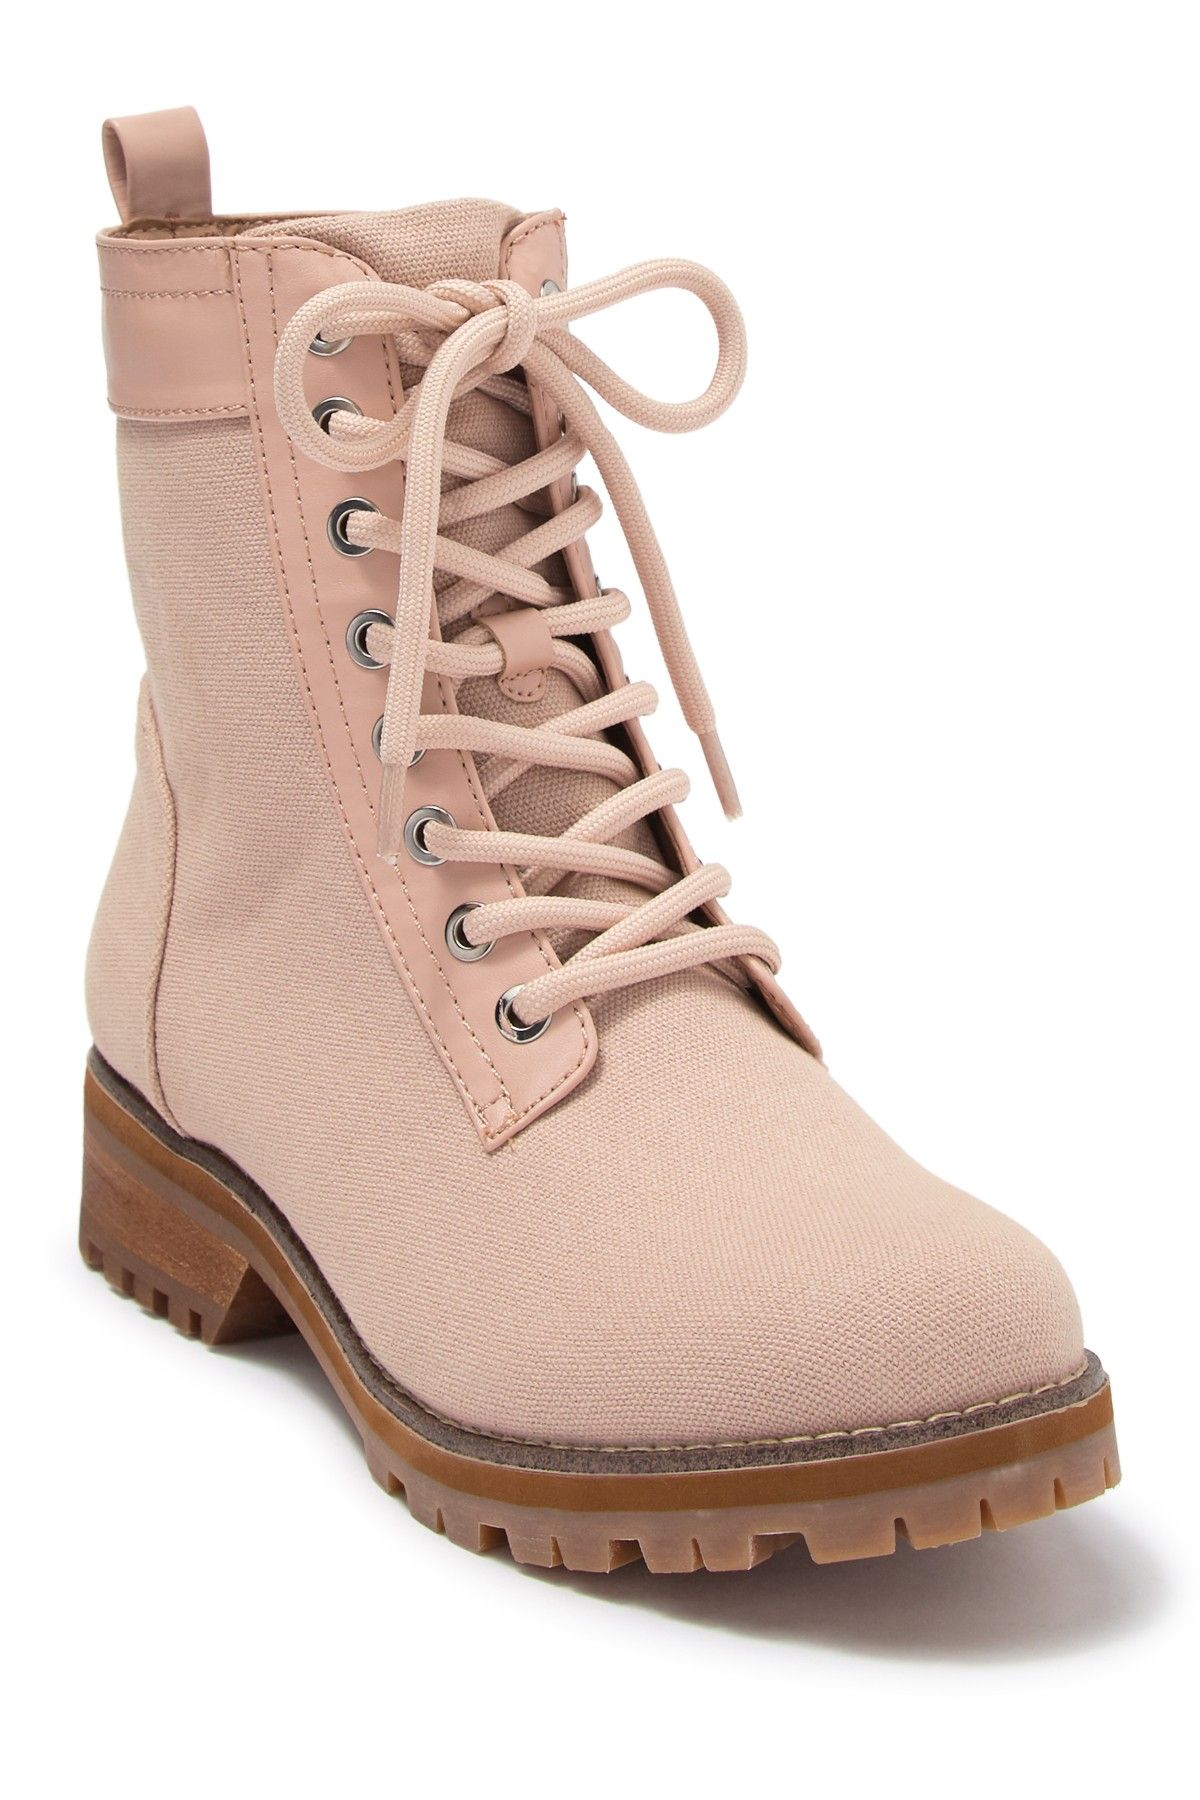 12 Cute Combat Boots - Military Style Boots